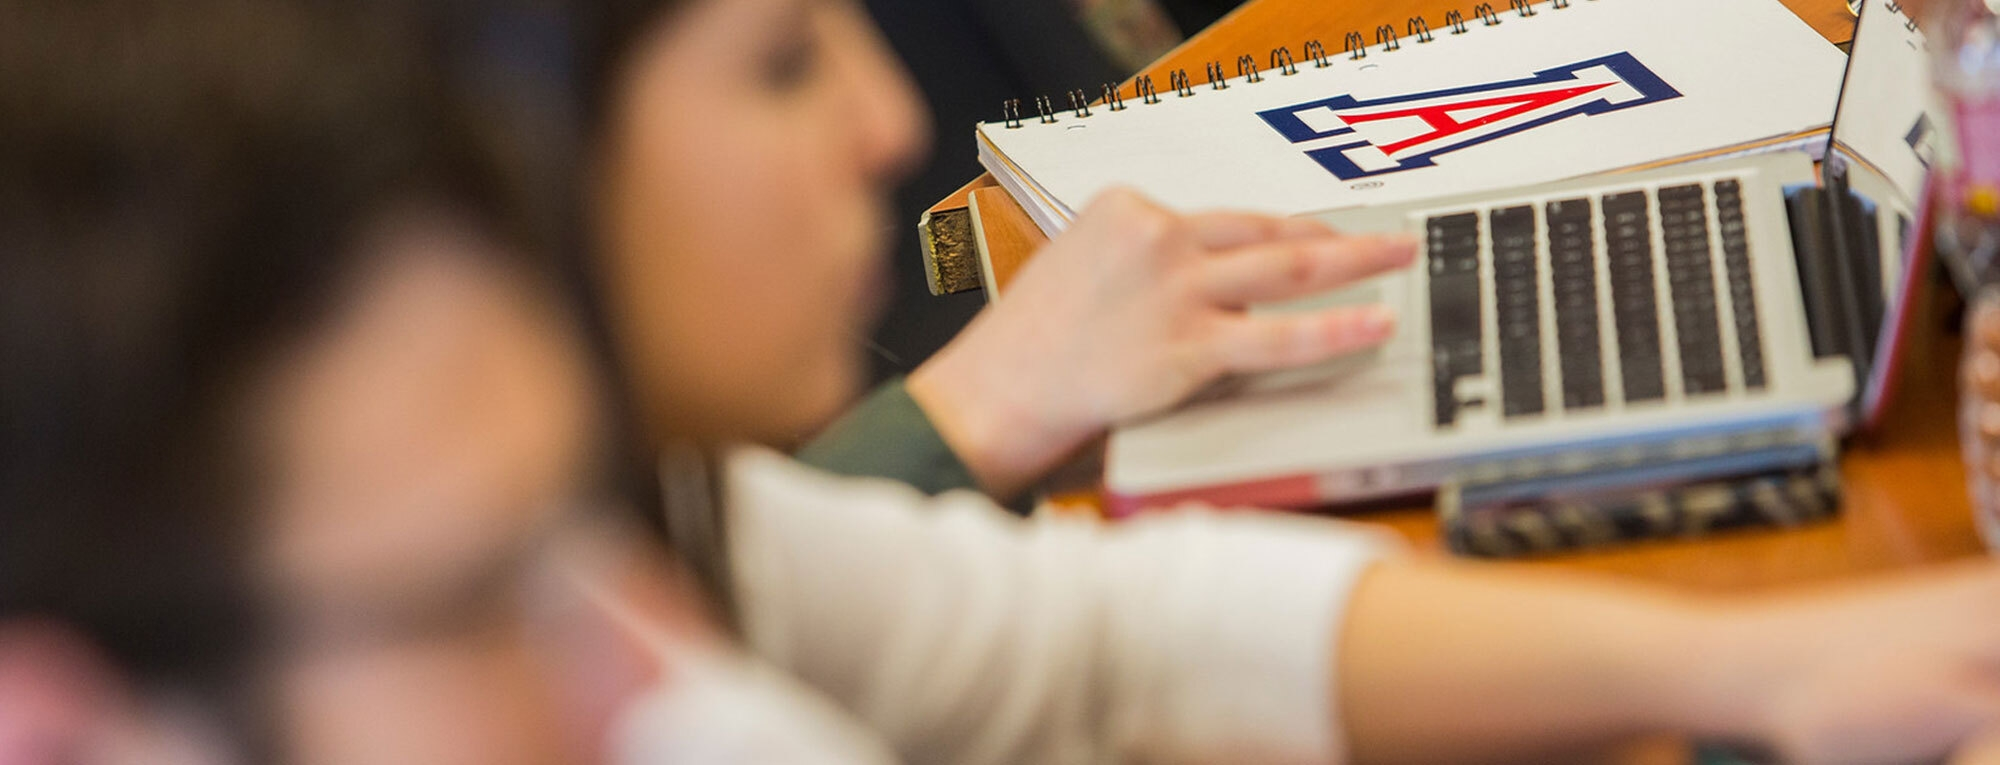 background shows notebook with University of Arizona logo, hand on laptop. Foreground shows two people blurred